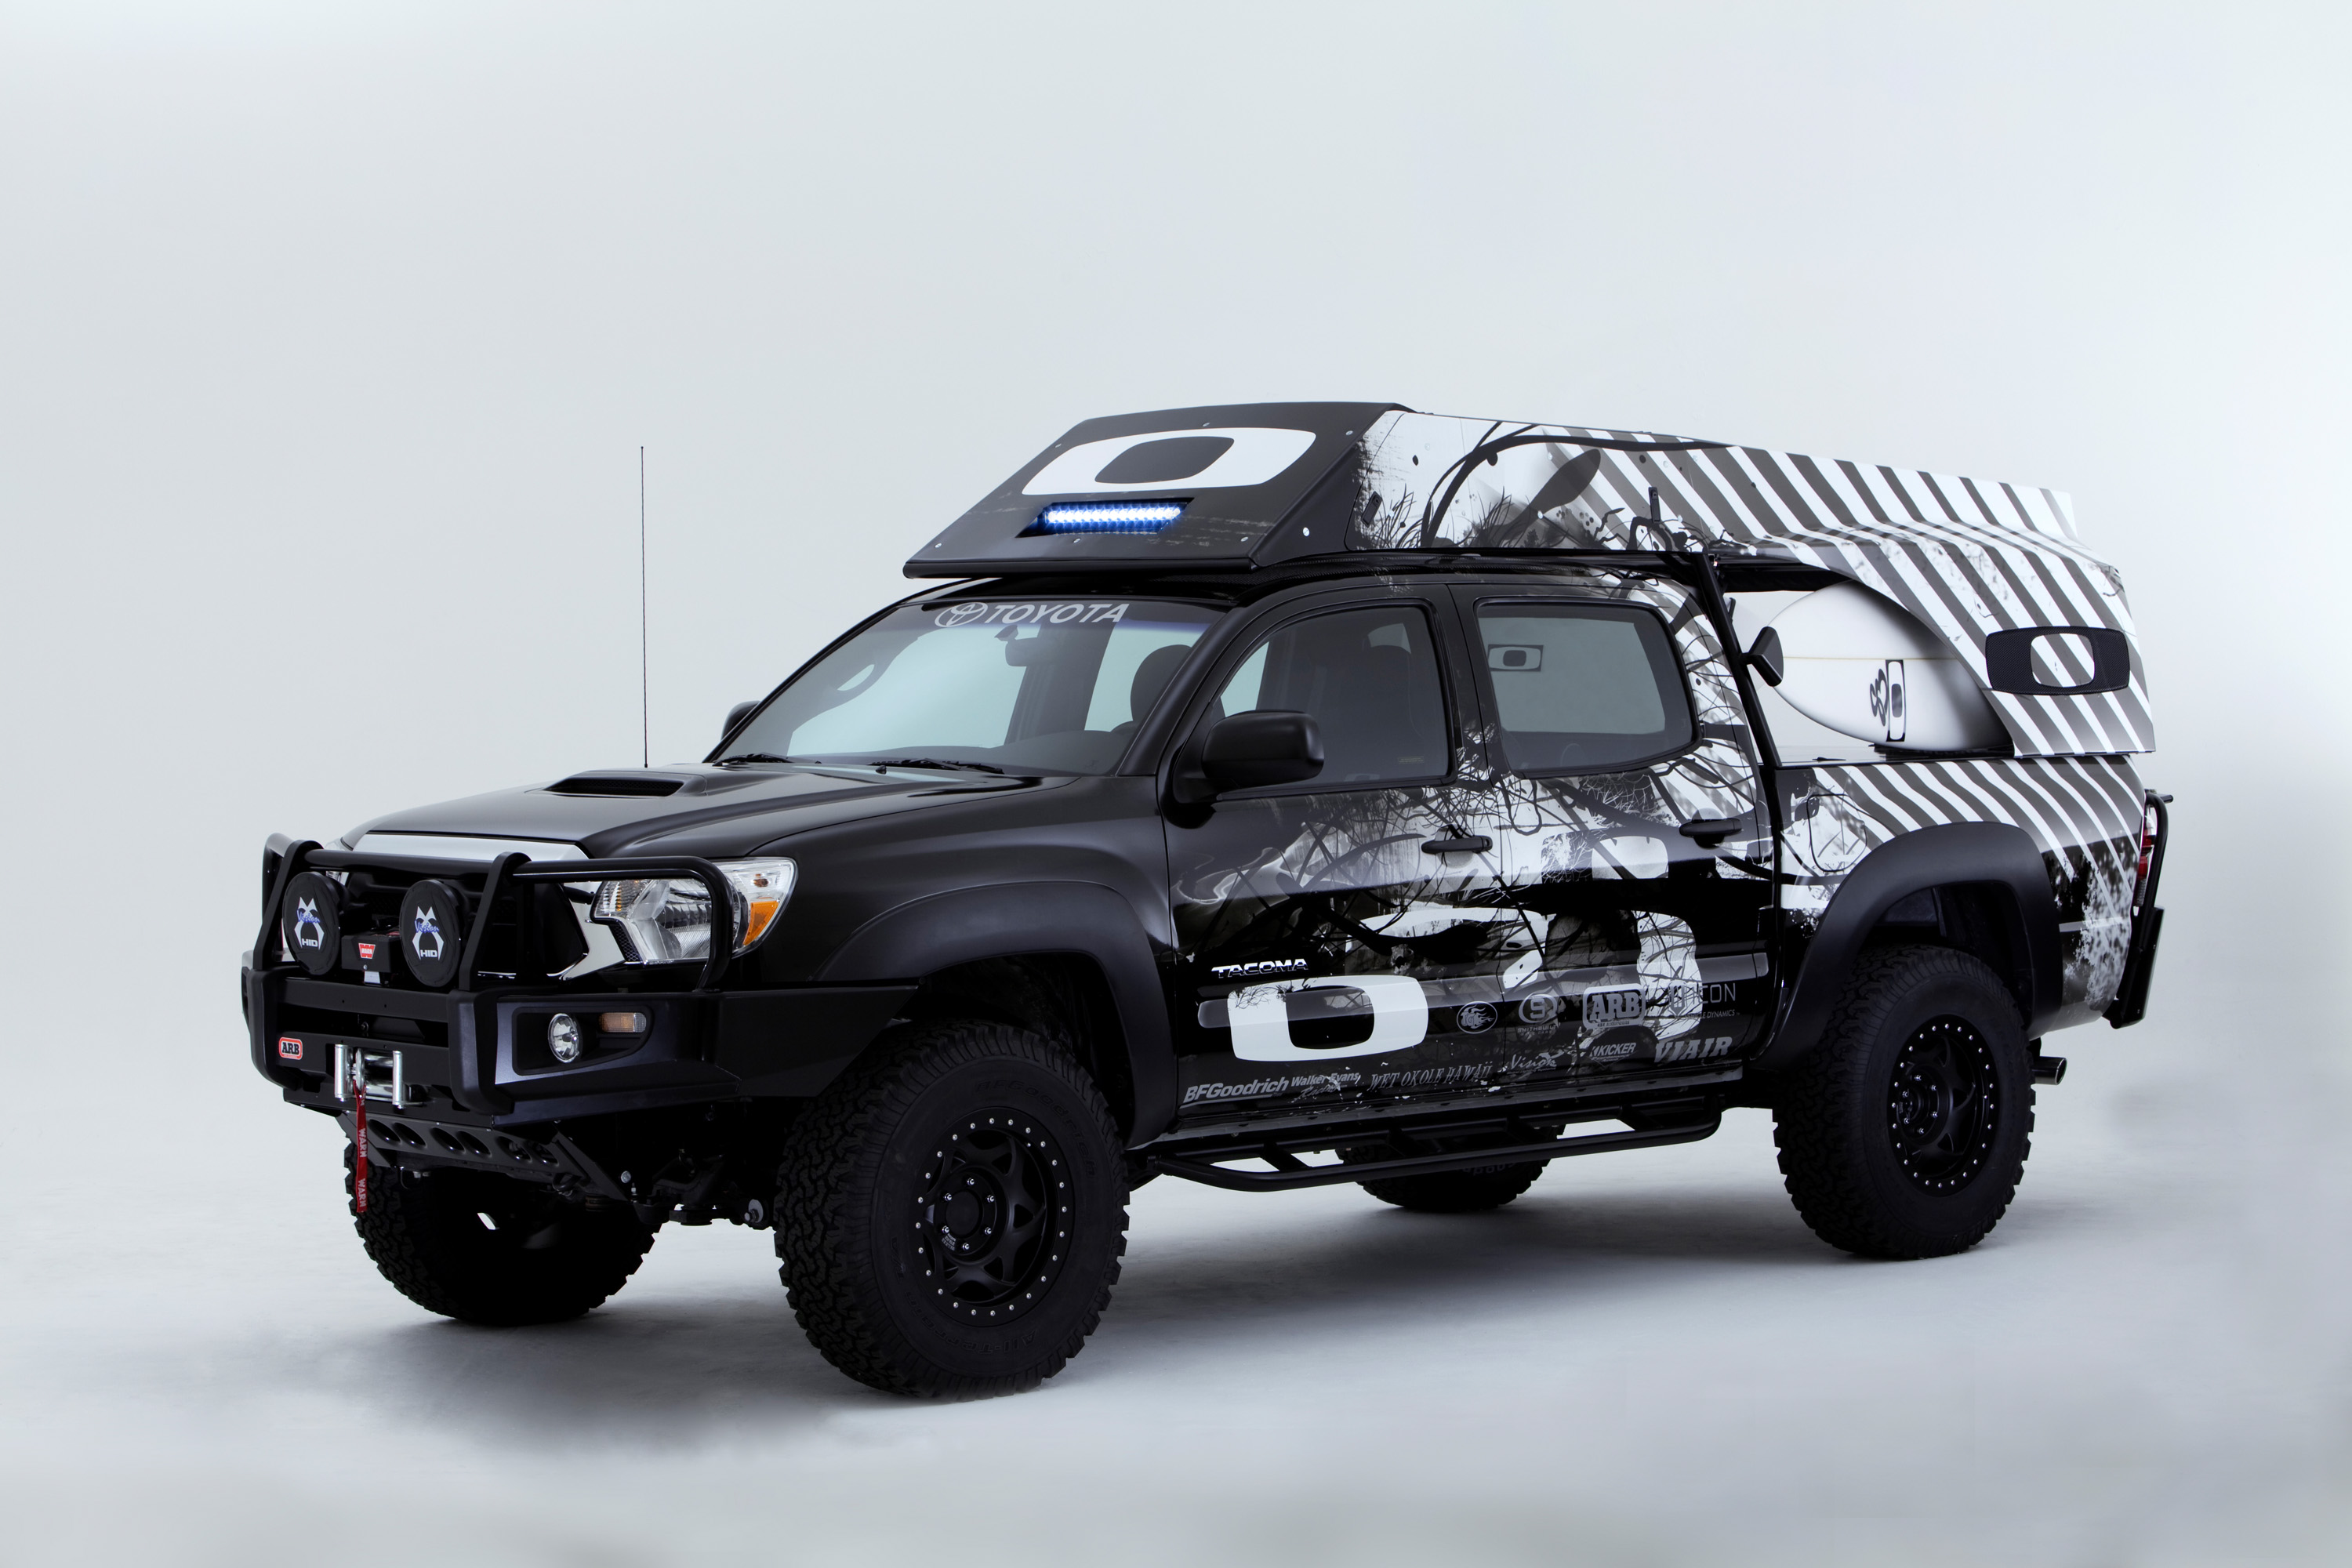 x baja toyota truth the about tx cars tacoma t trd review edition